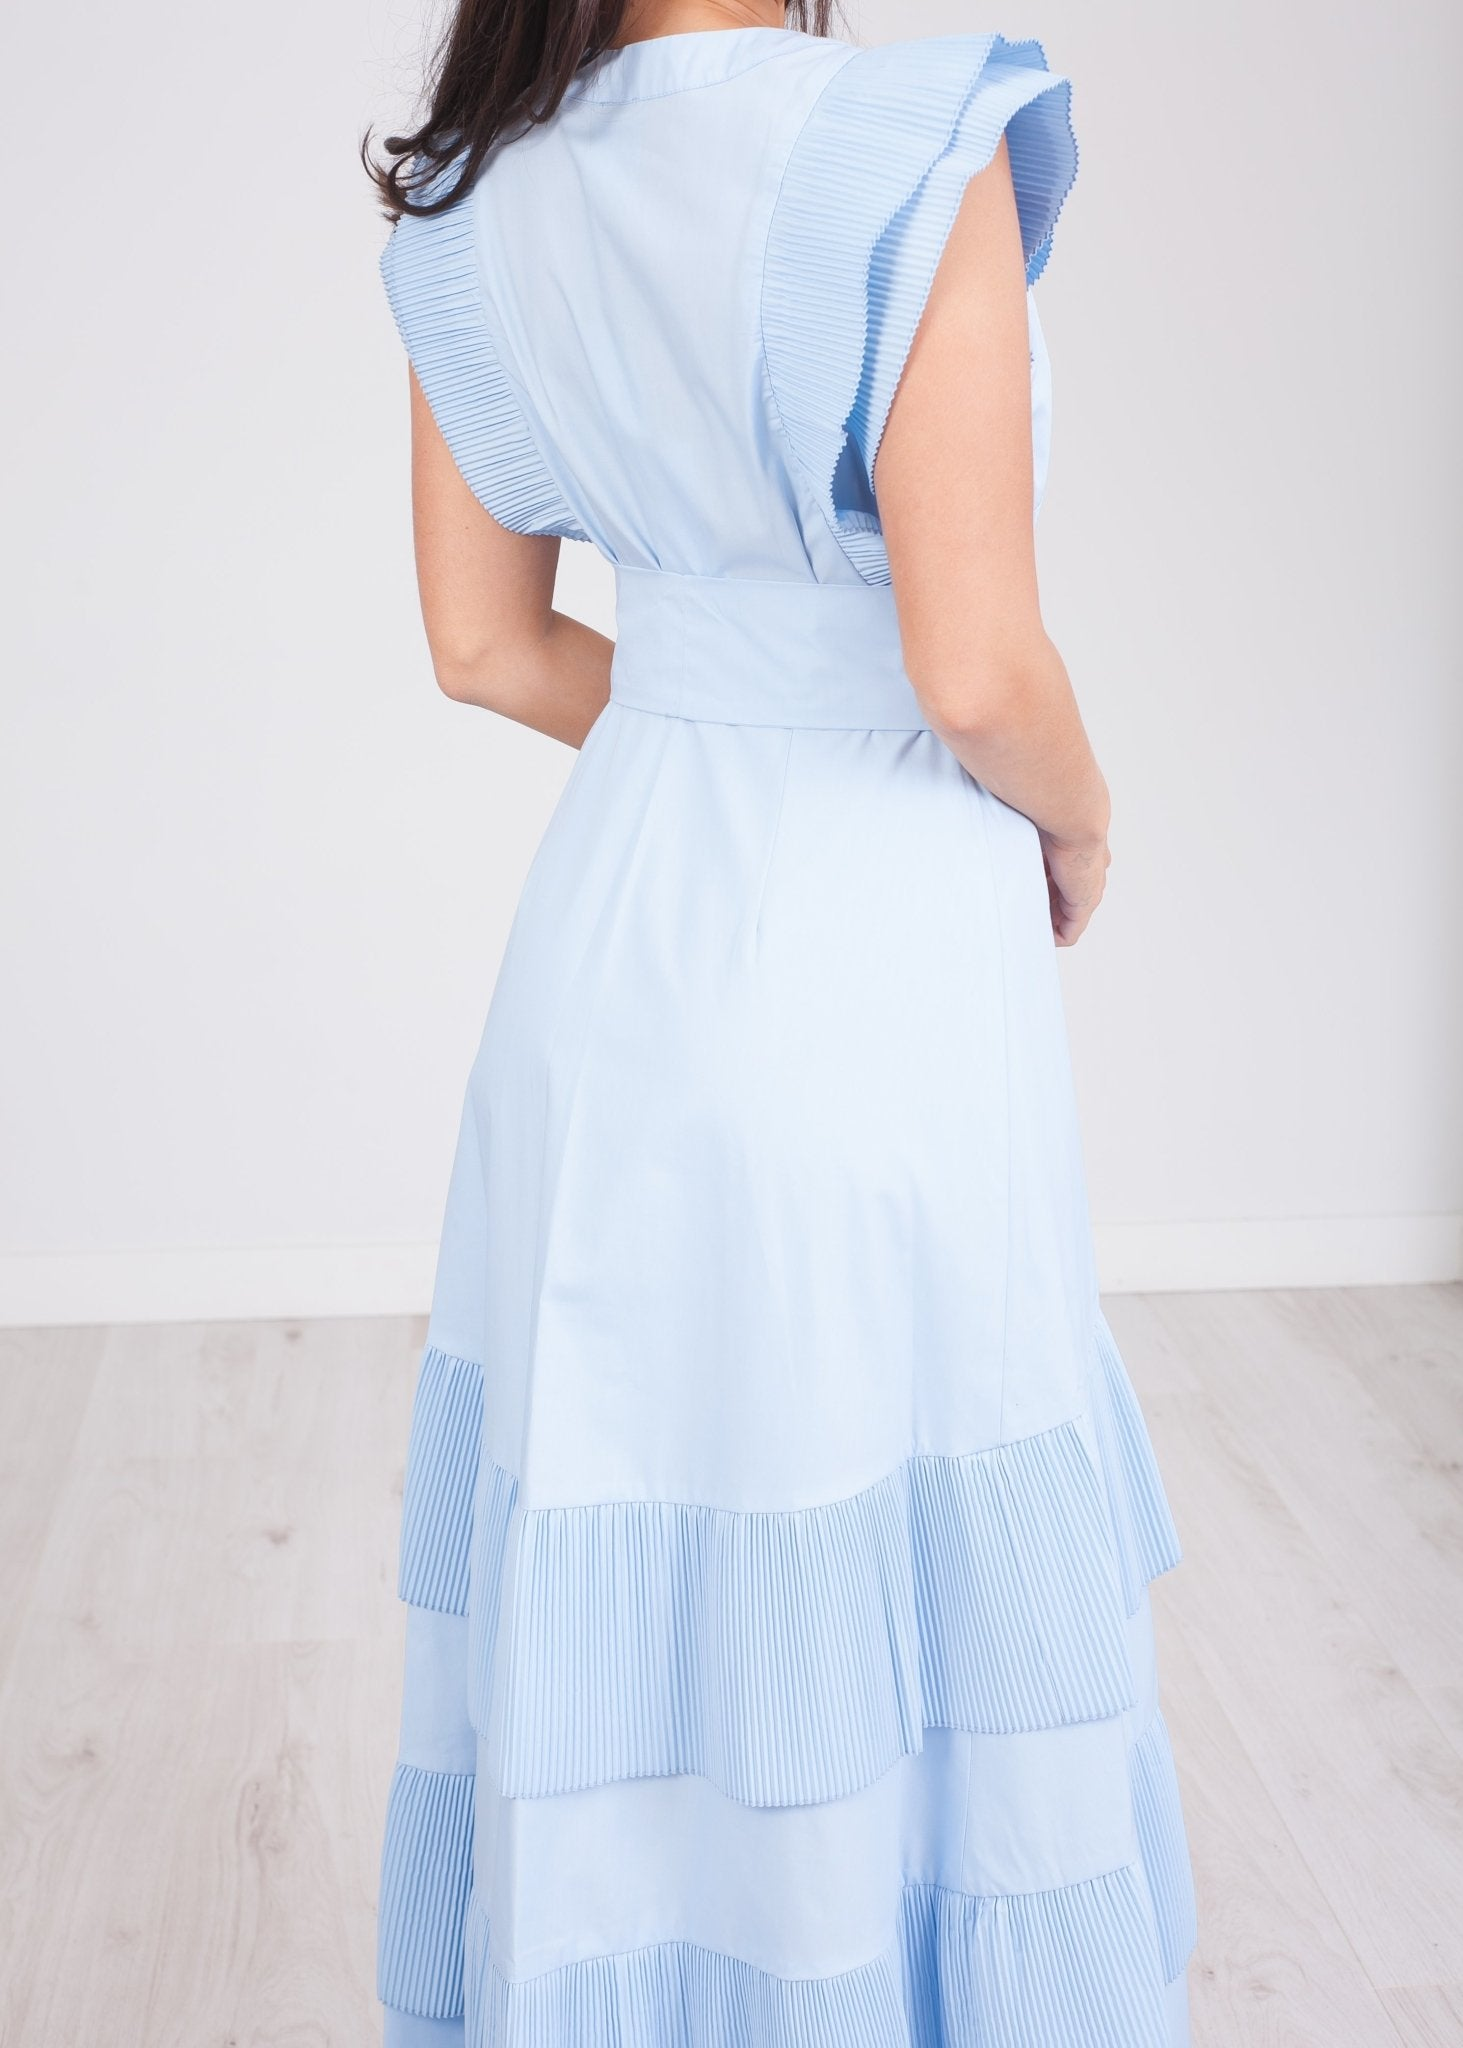 Alana Blue Tiered Dress - The Walk in Wardrobe